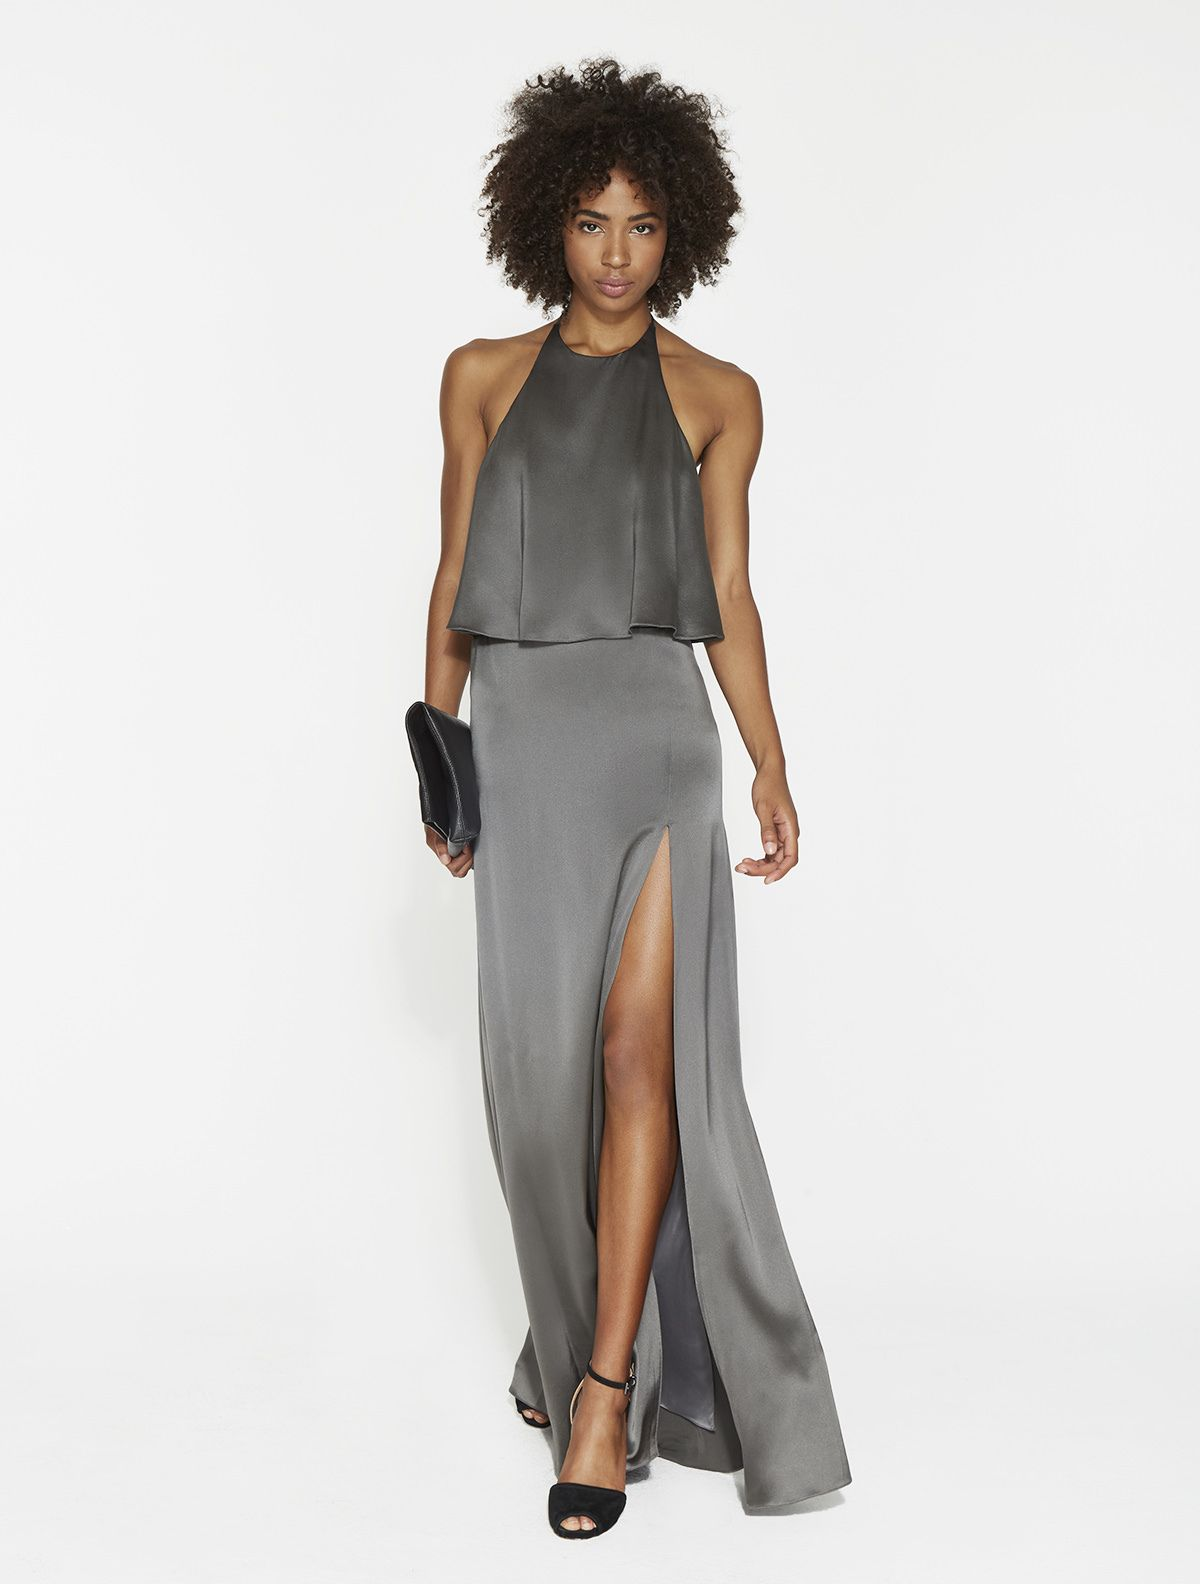 Satin Flounce Gown | Satin, Gowns and Halston heritage